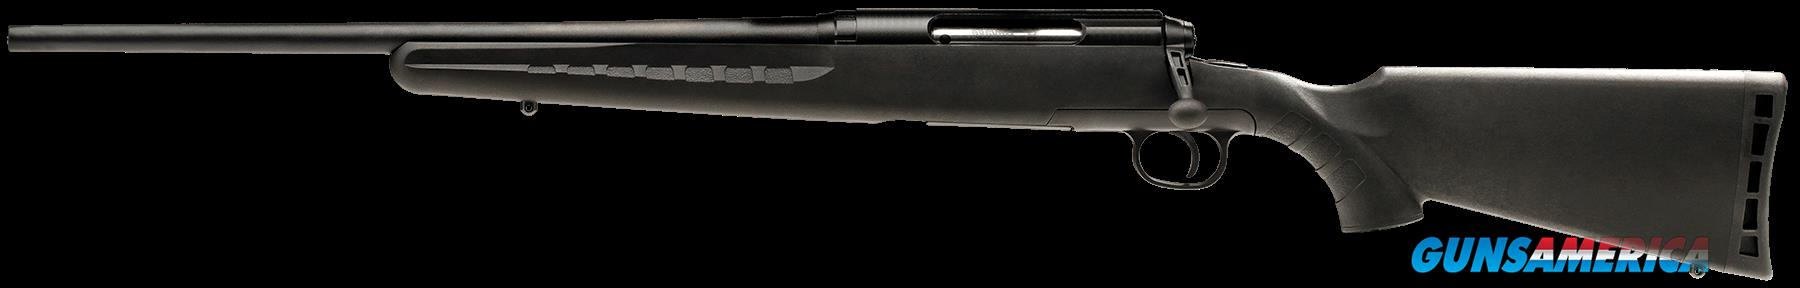 "Savage 22672 Axis LH Bolt 6.5 Creedmoor 22"" 4+1 Synthetic Black Stk Blued  Guns > Rifles > S Misc Rifles"